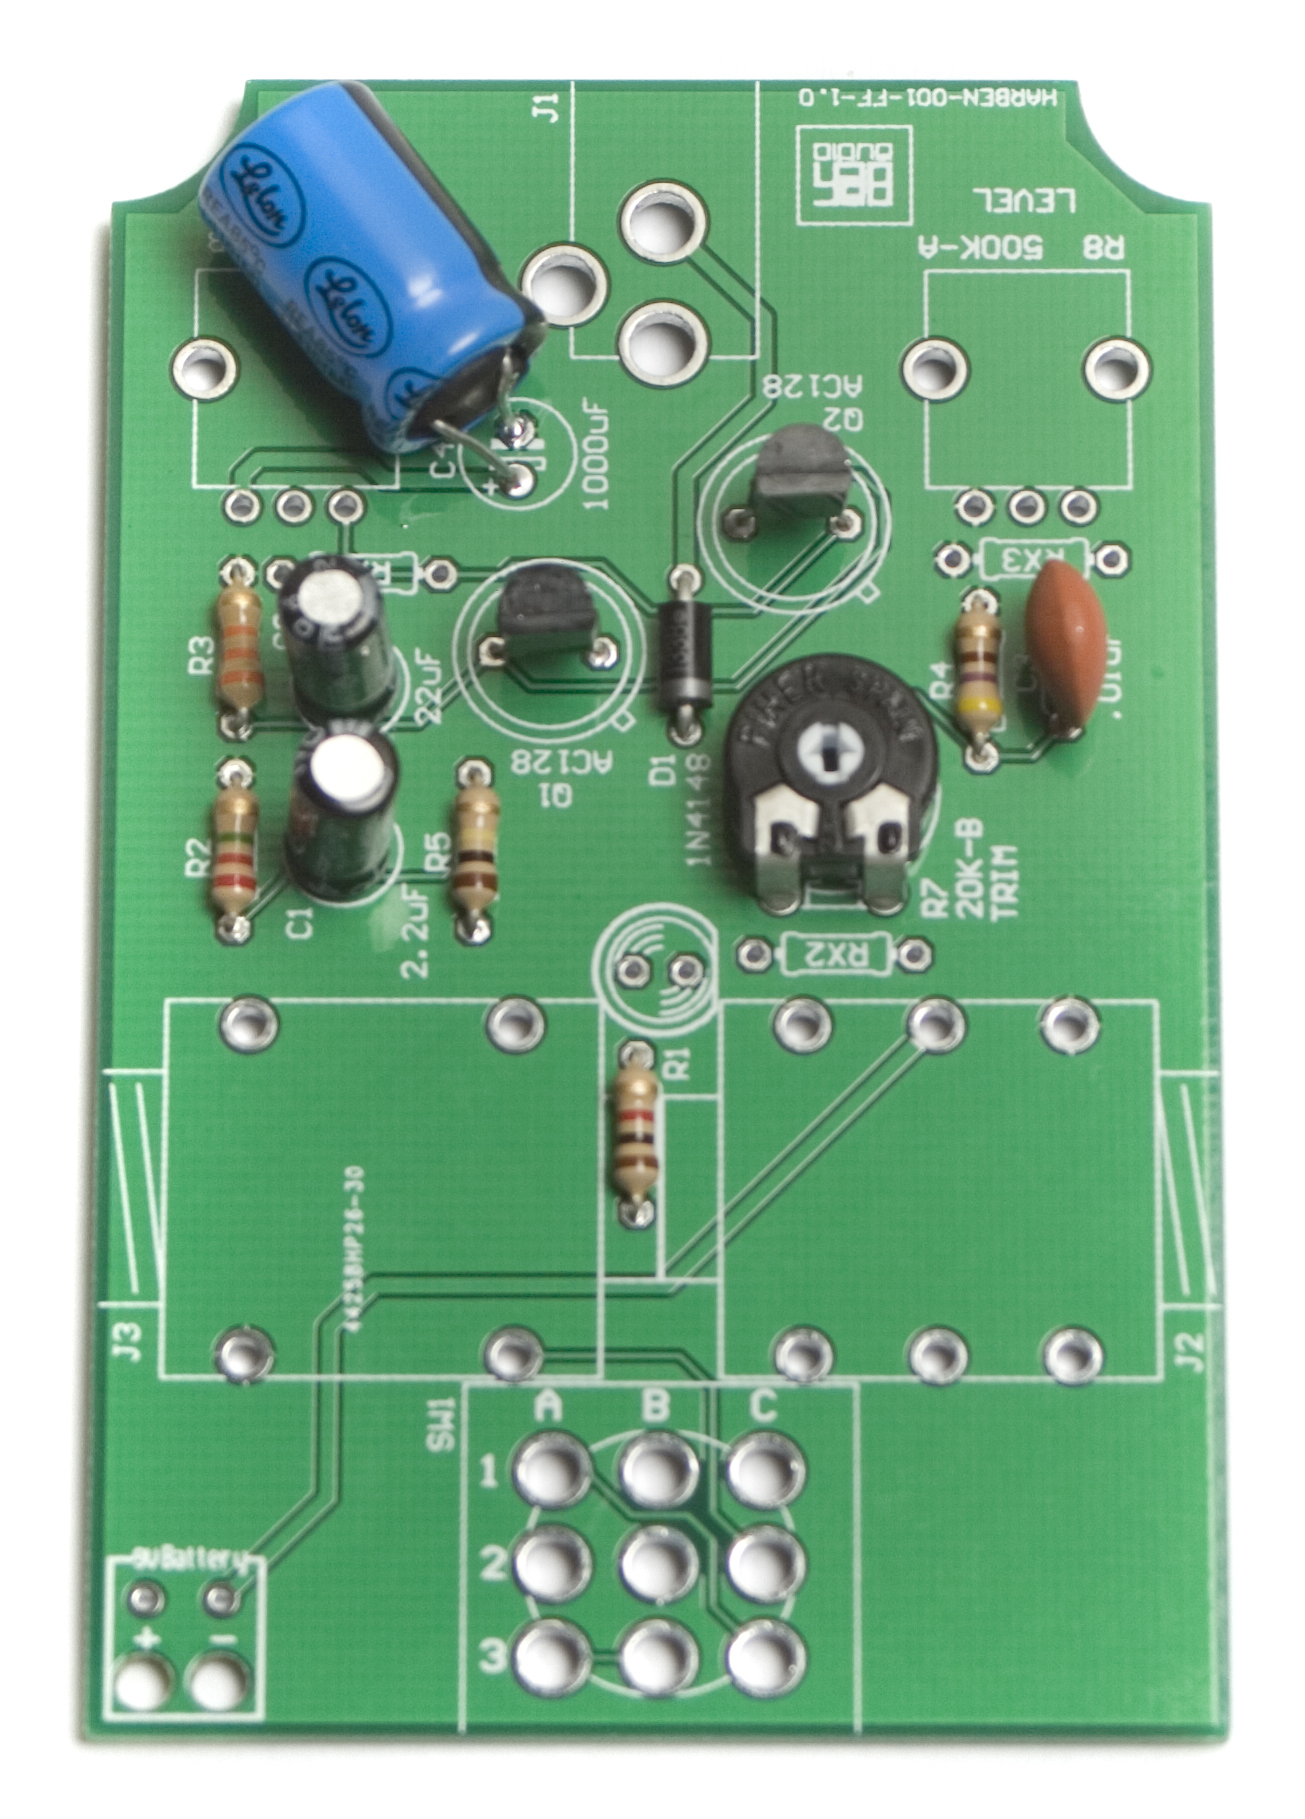 Wired Face The Fuzz Assembly Instructions Synthrotek Guitar Pedal Schematic Together With Transistor Tester Capacitors